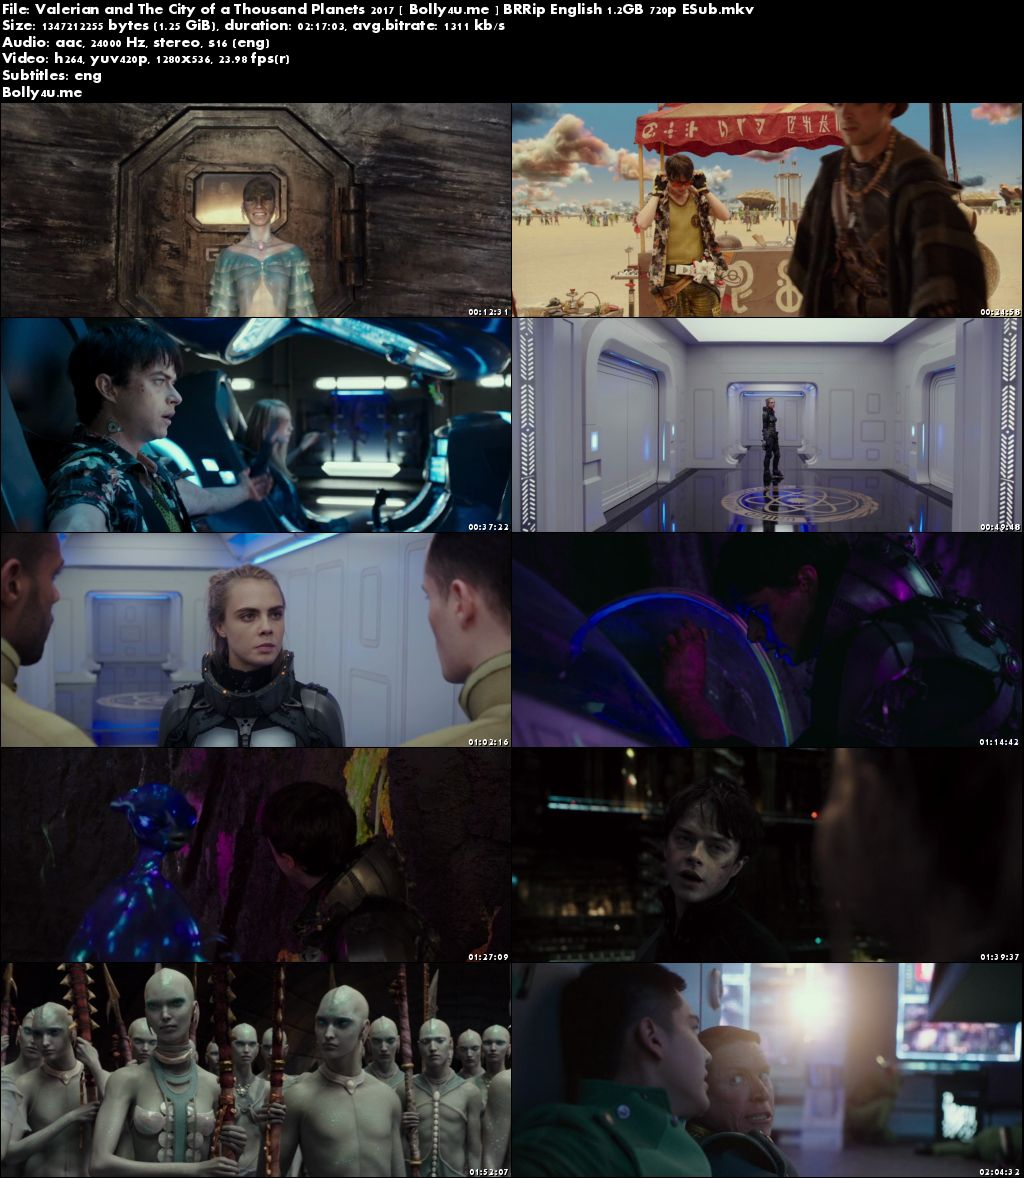 Valerian and The City of a Thousand Planets 2017 BRRip 400MB English 480p ESub Download